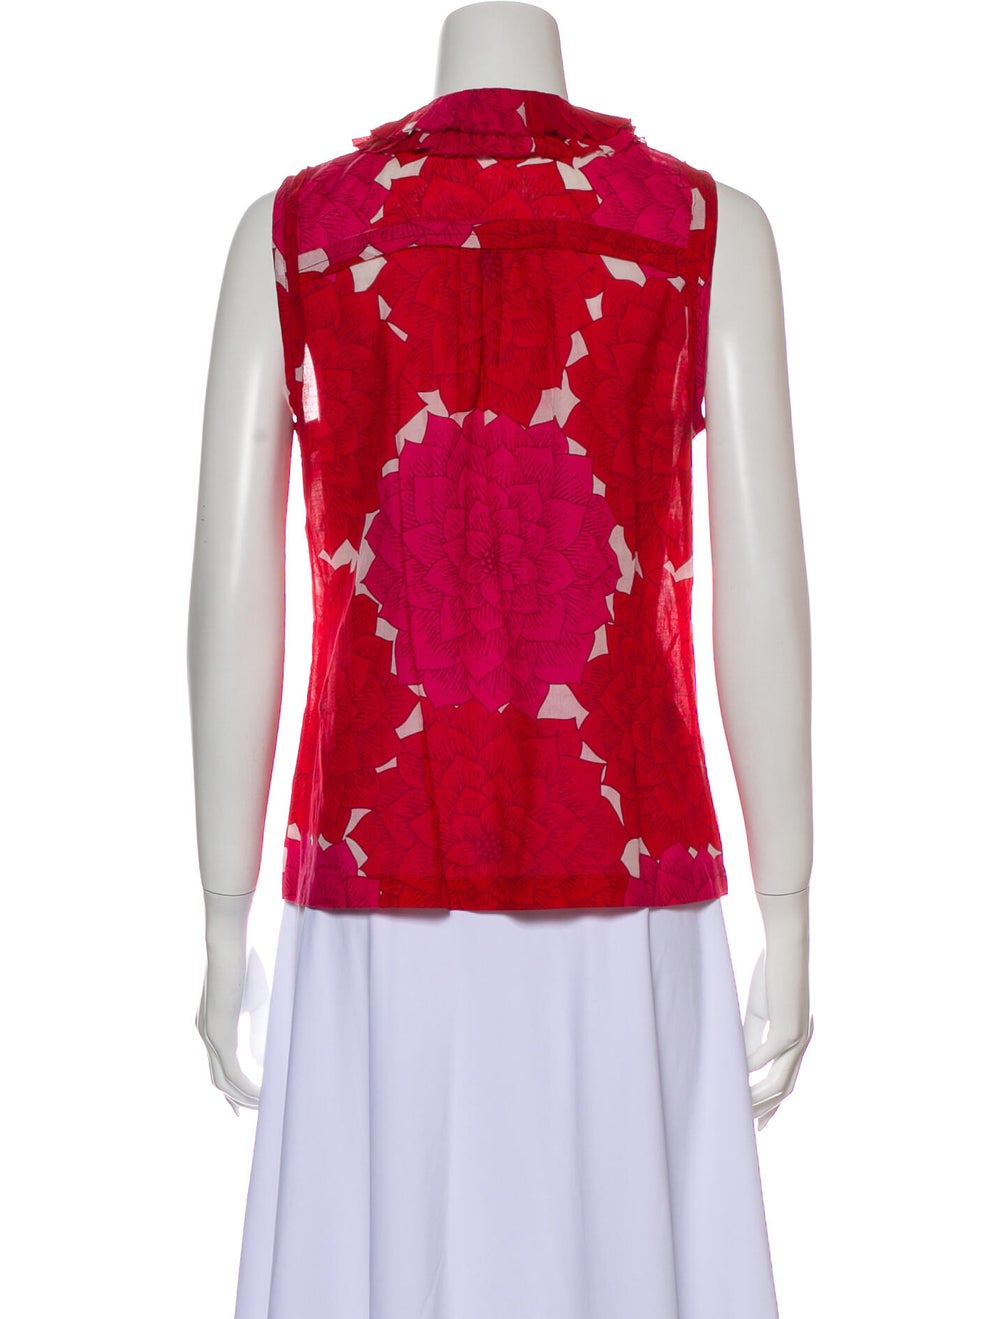 Tory Burch Floral Print Crew Neck Top Red - image 3